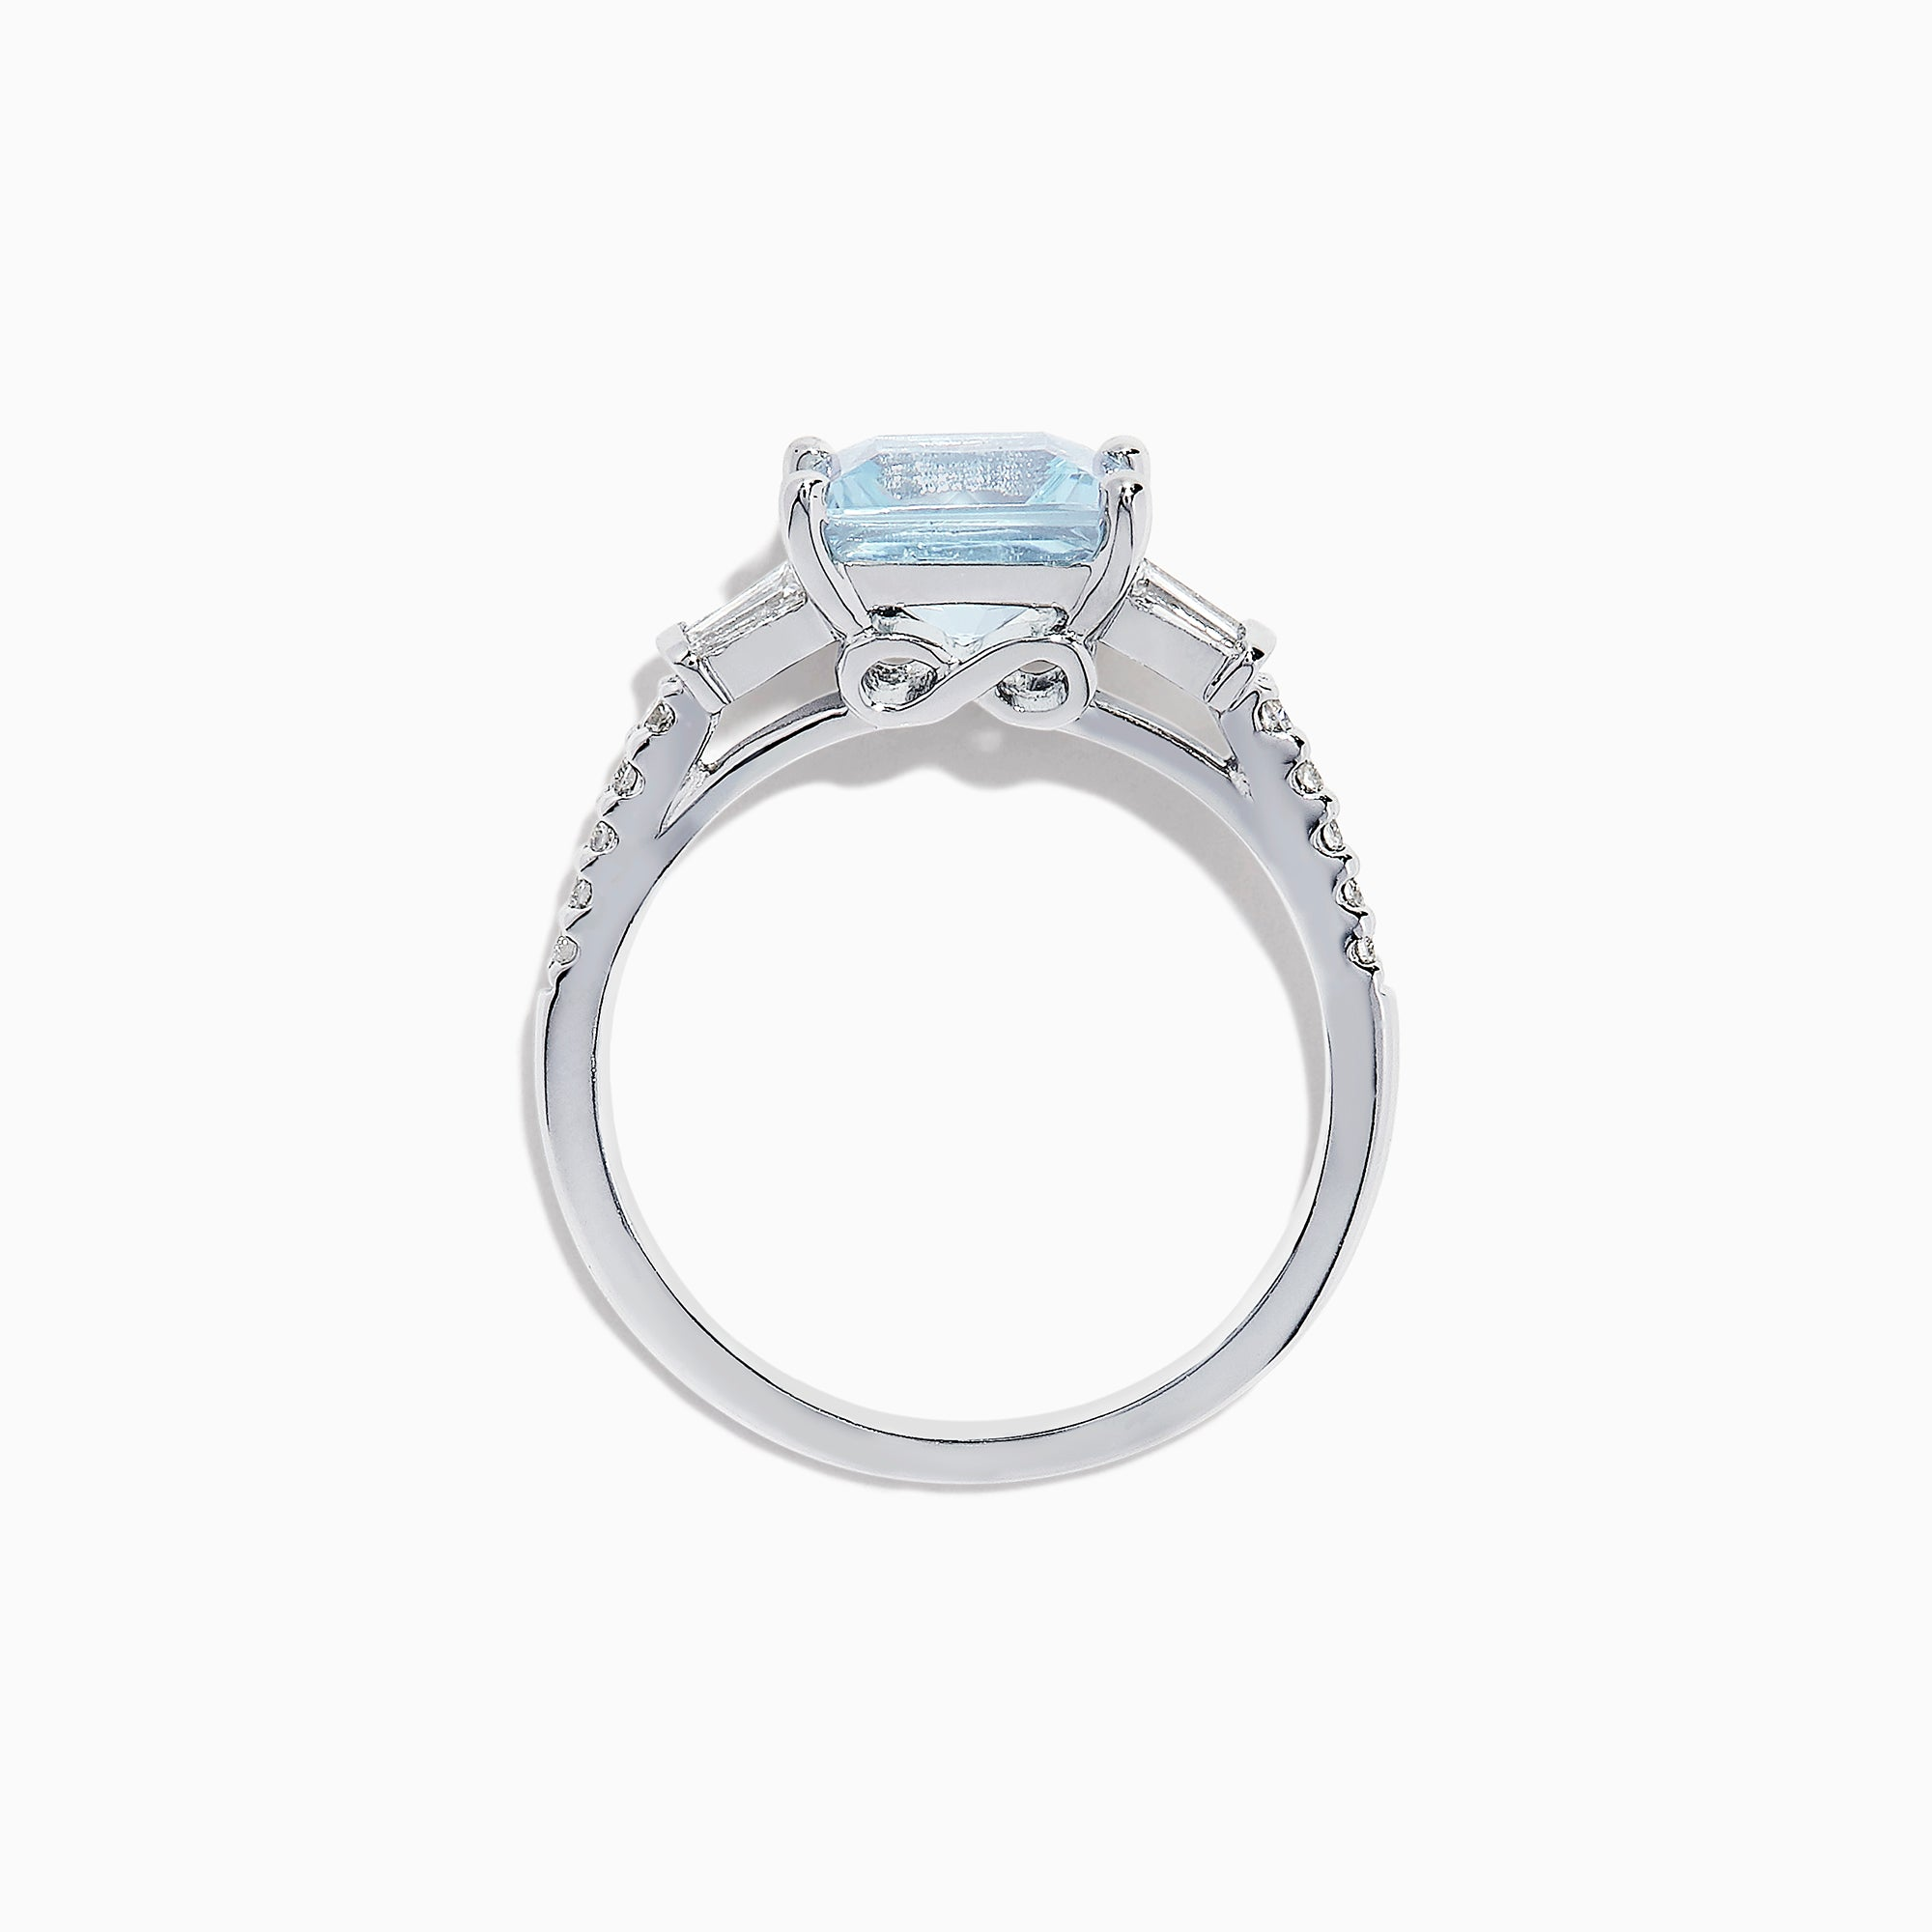 Effy Aquarius 14K White Gold Aquamarine and Diamond Ring, 2.41 TCW